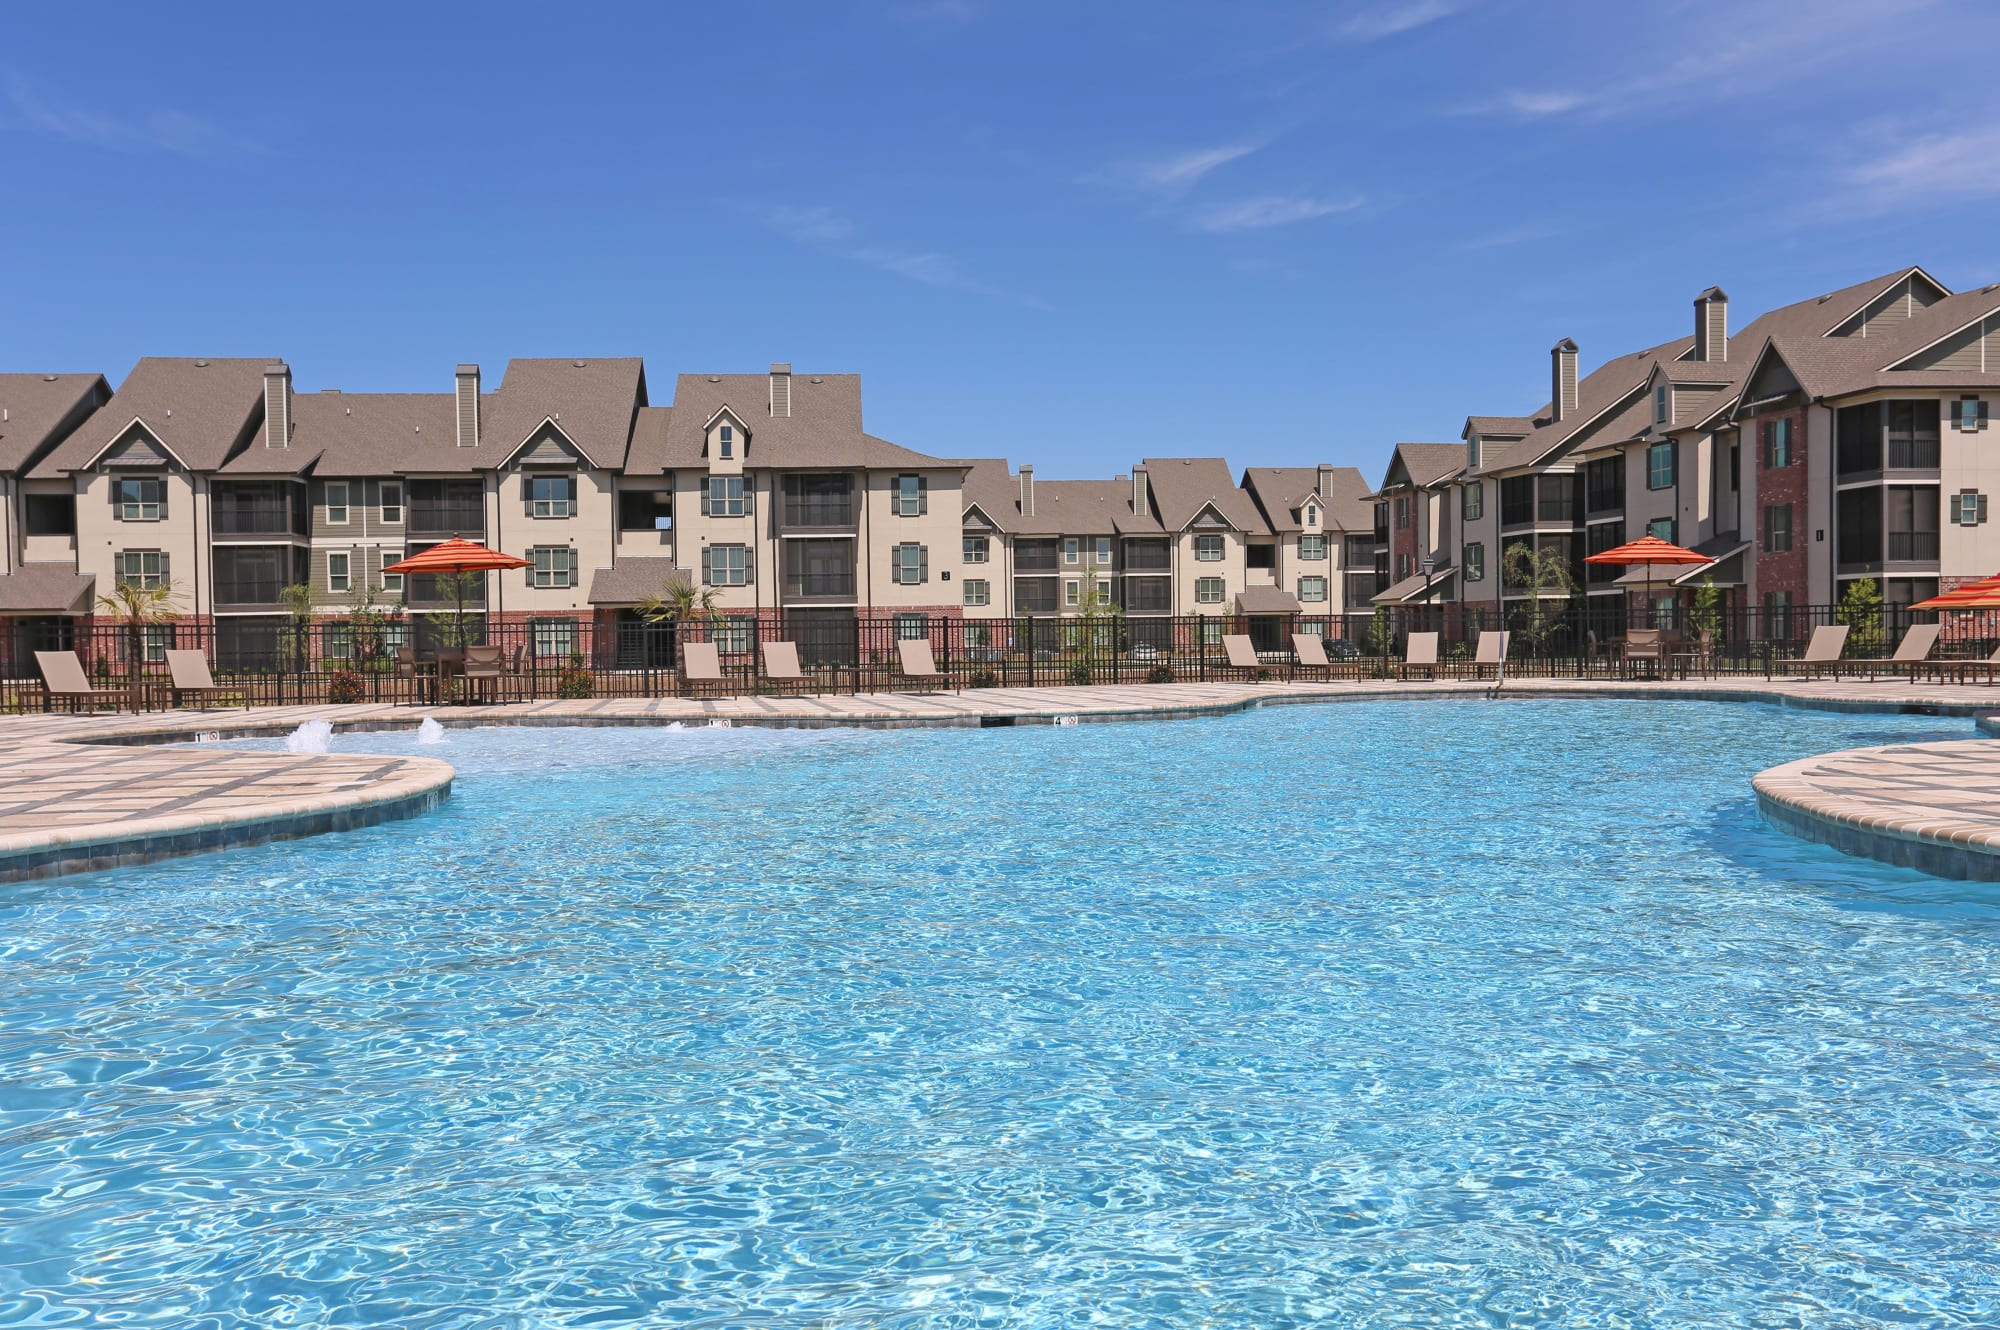 Apartments at Acadia Villas in Thibodaux, Louisiana